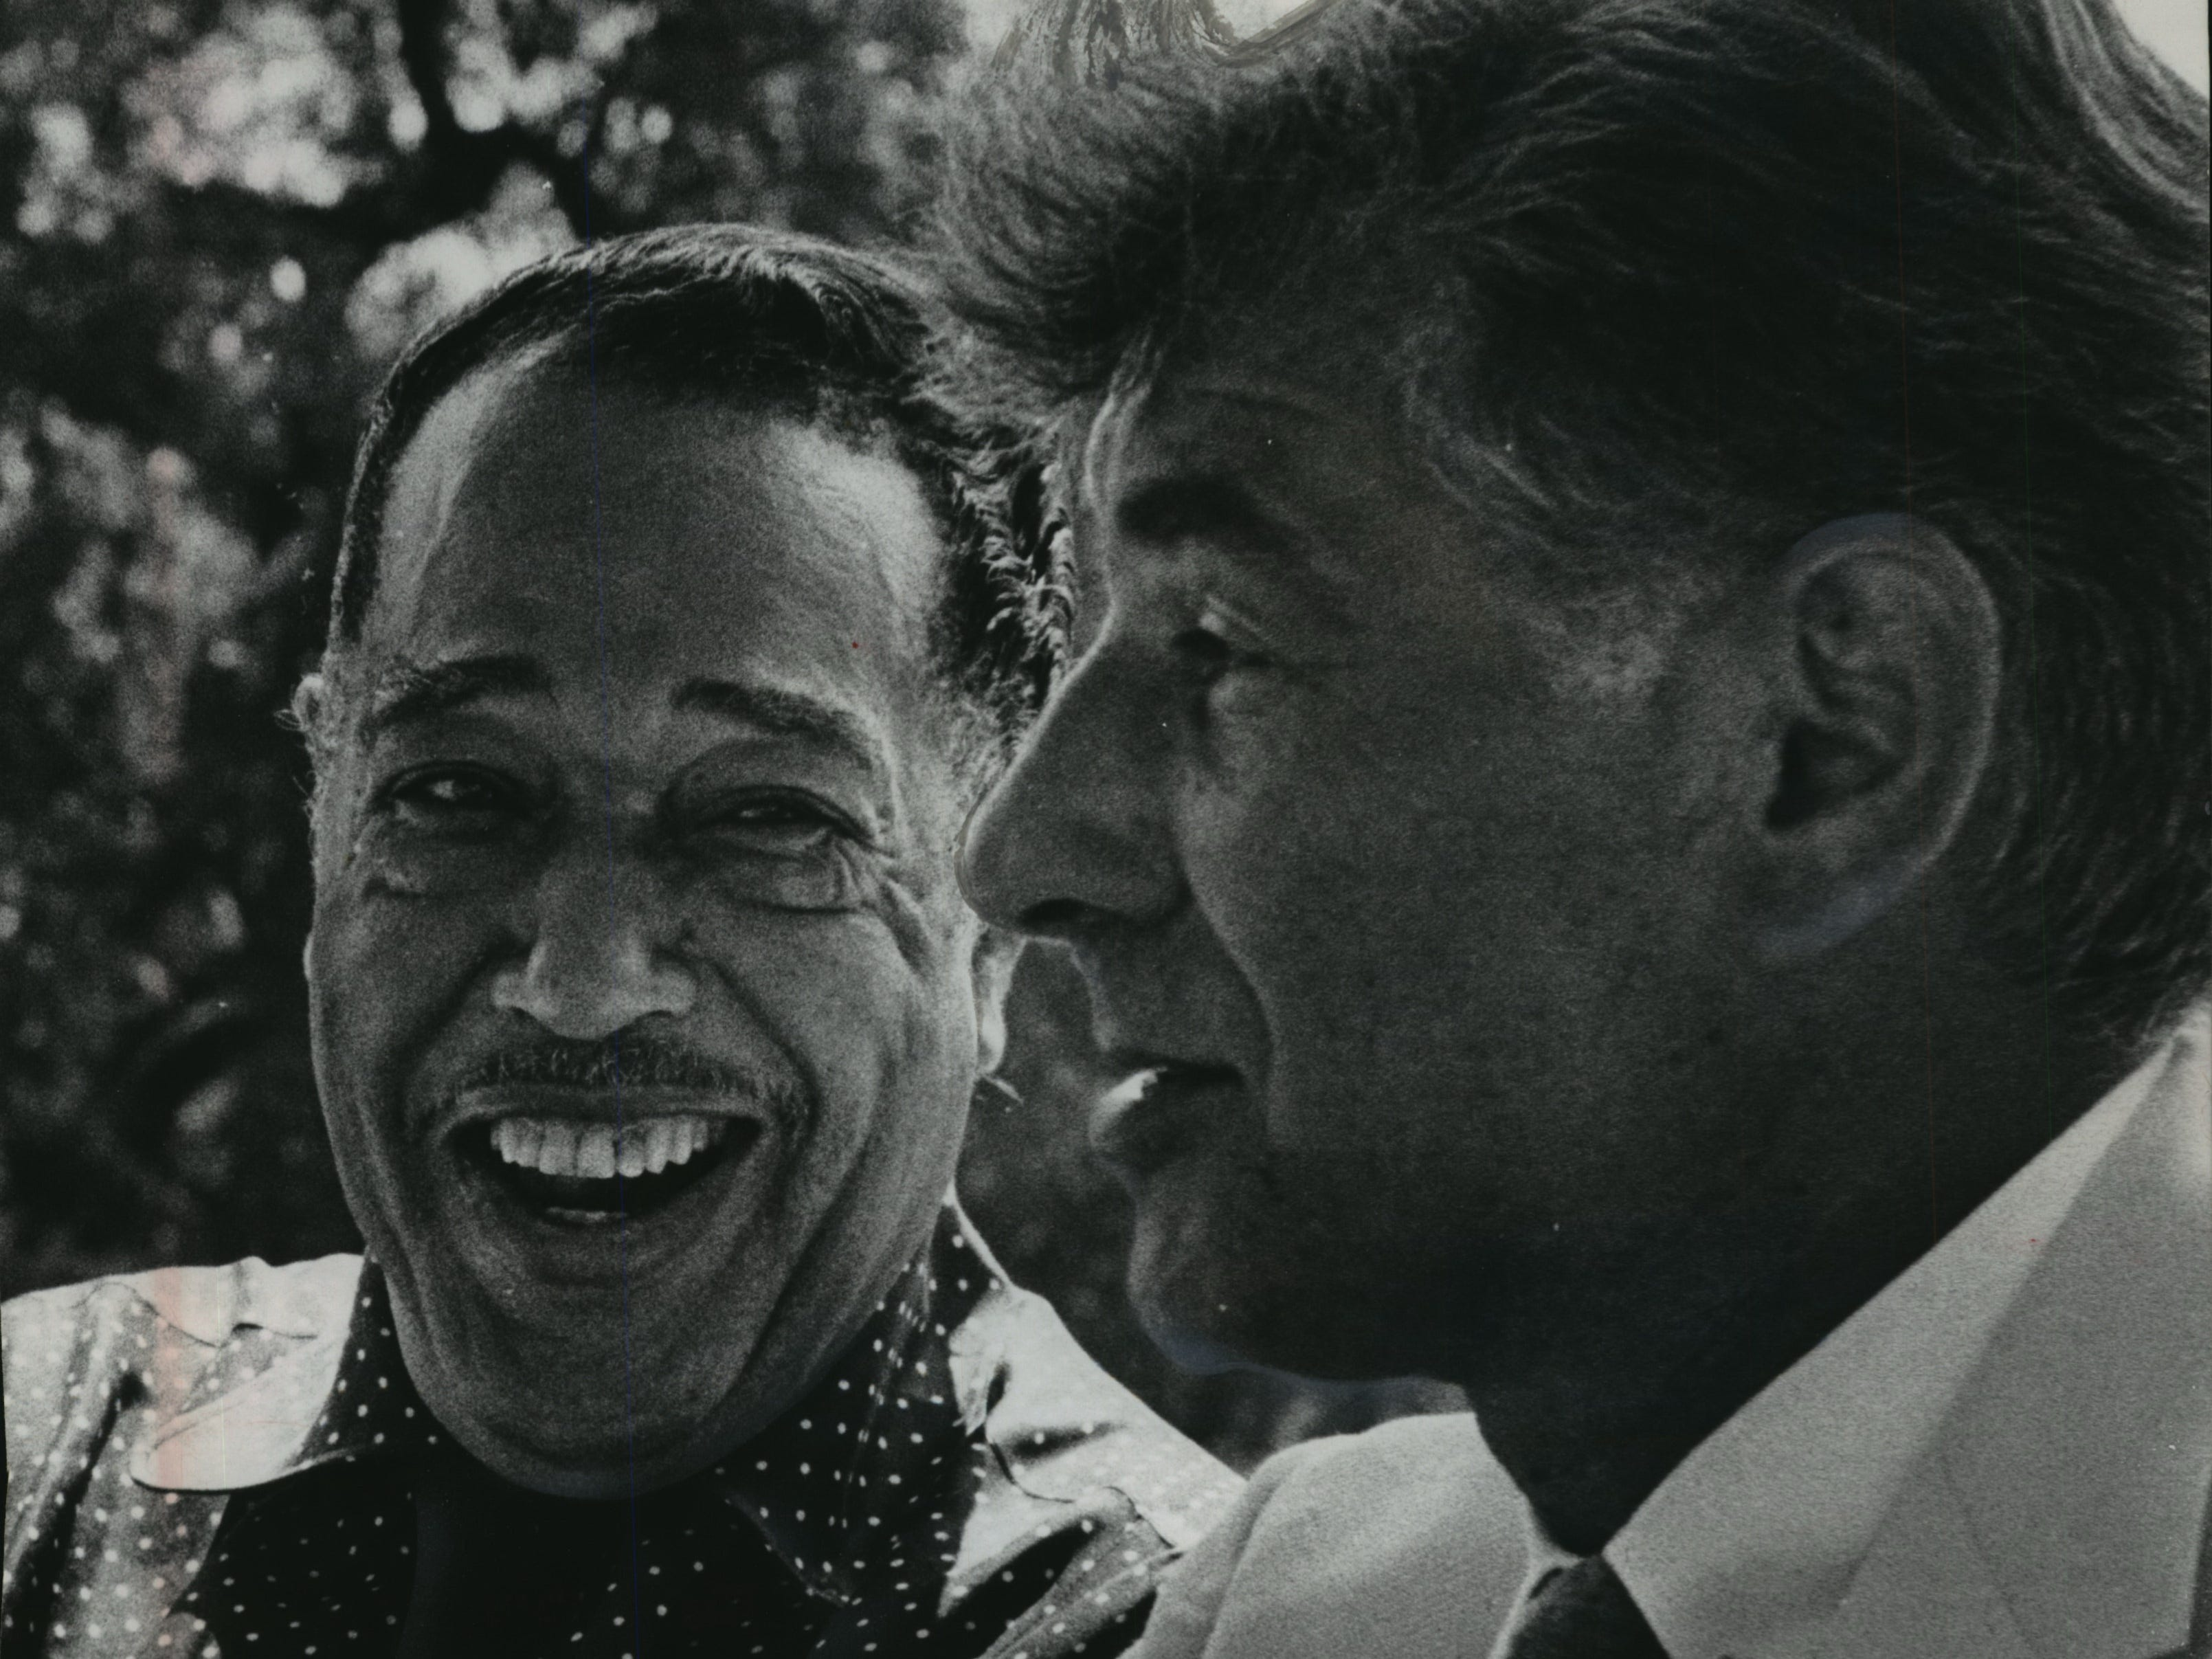 Duke Ellington and Leonard Bernstein meet at the River Hills estate of Robert A. Uihlein, president of Jos. Schlitz Brewing Co., on July 2, 1966. The music legends crossed paths because they were performing concerts, one day after the other, as part of the city's Old Milwaukee Days celebration, a summer festival sponsored by Schlitz. It reportedly was the first time the two men had met. This photo was published in the July 3, 1966, Milwaukee Journal.